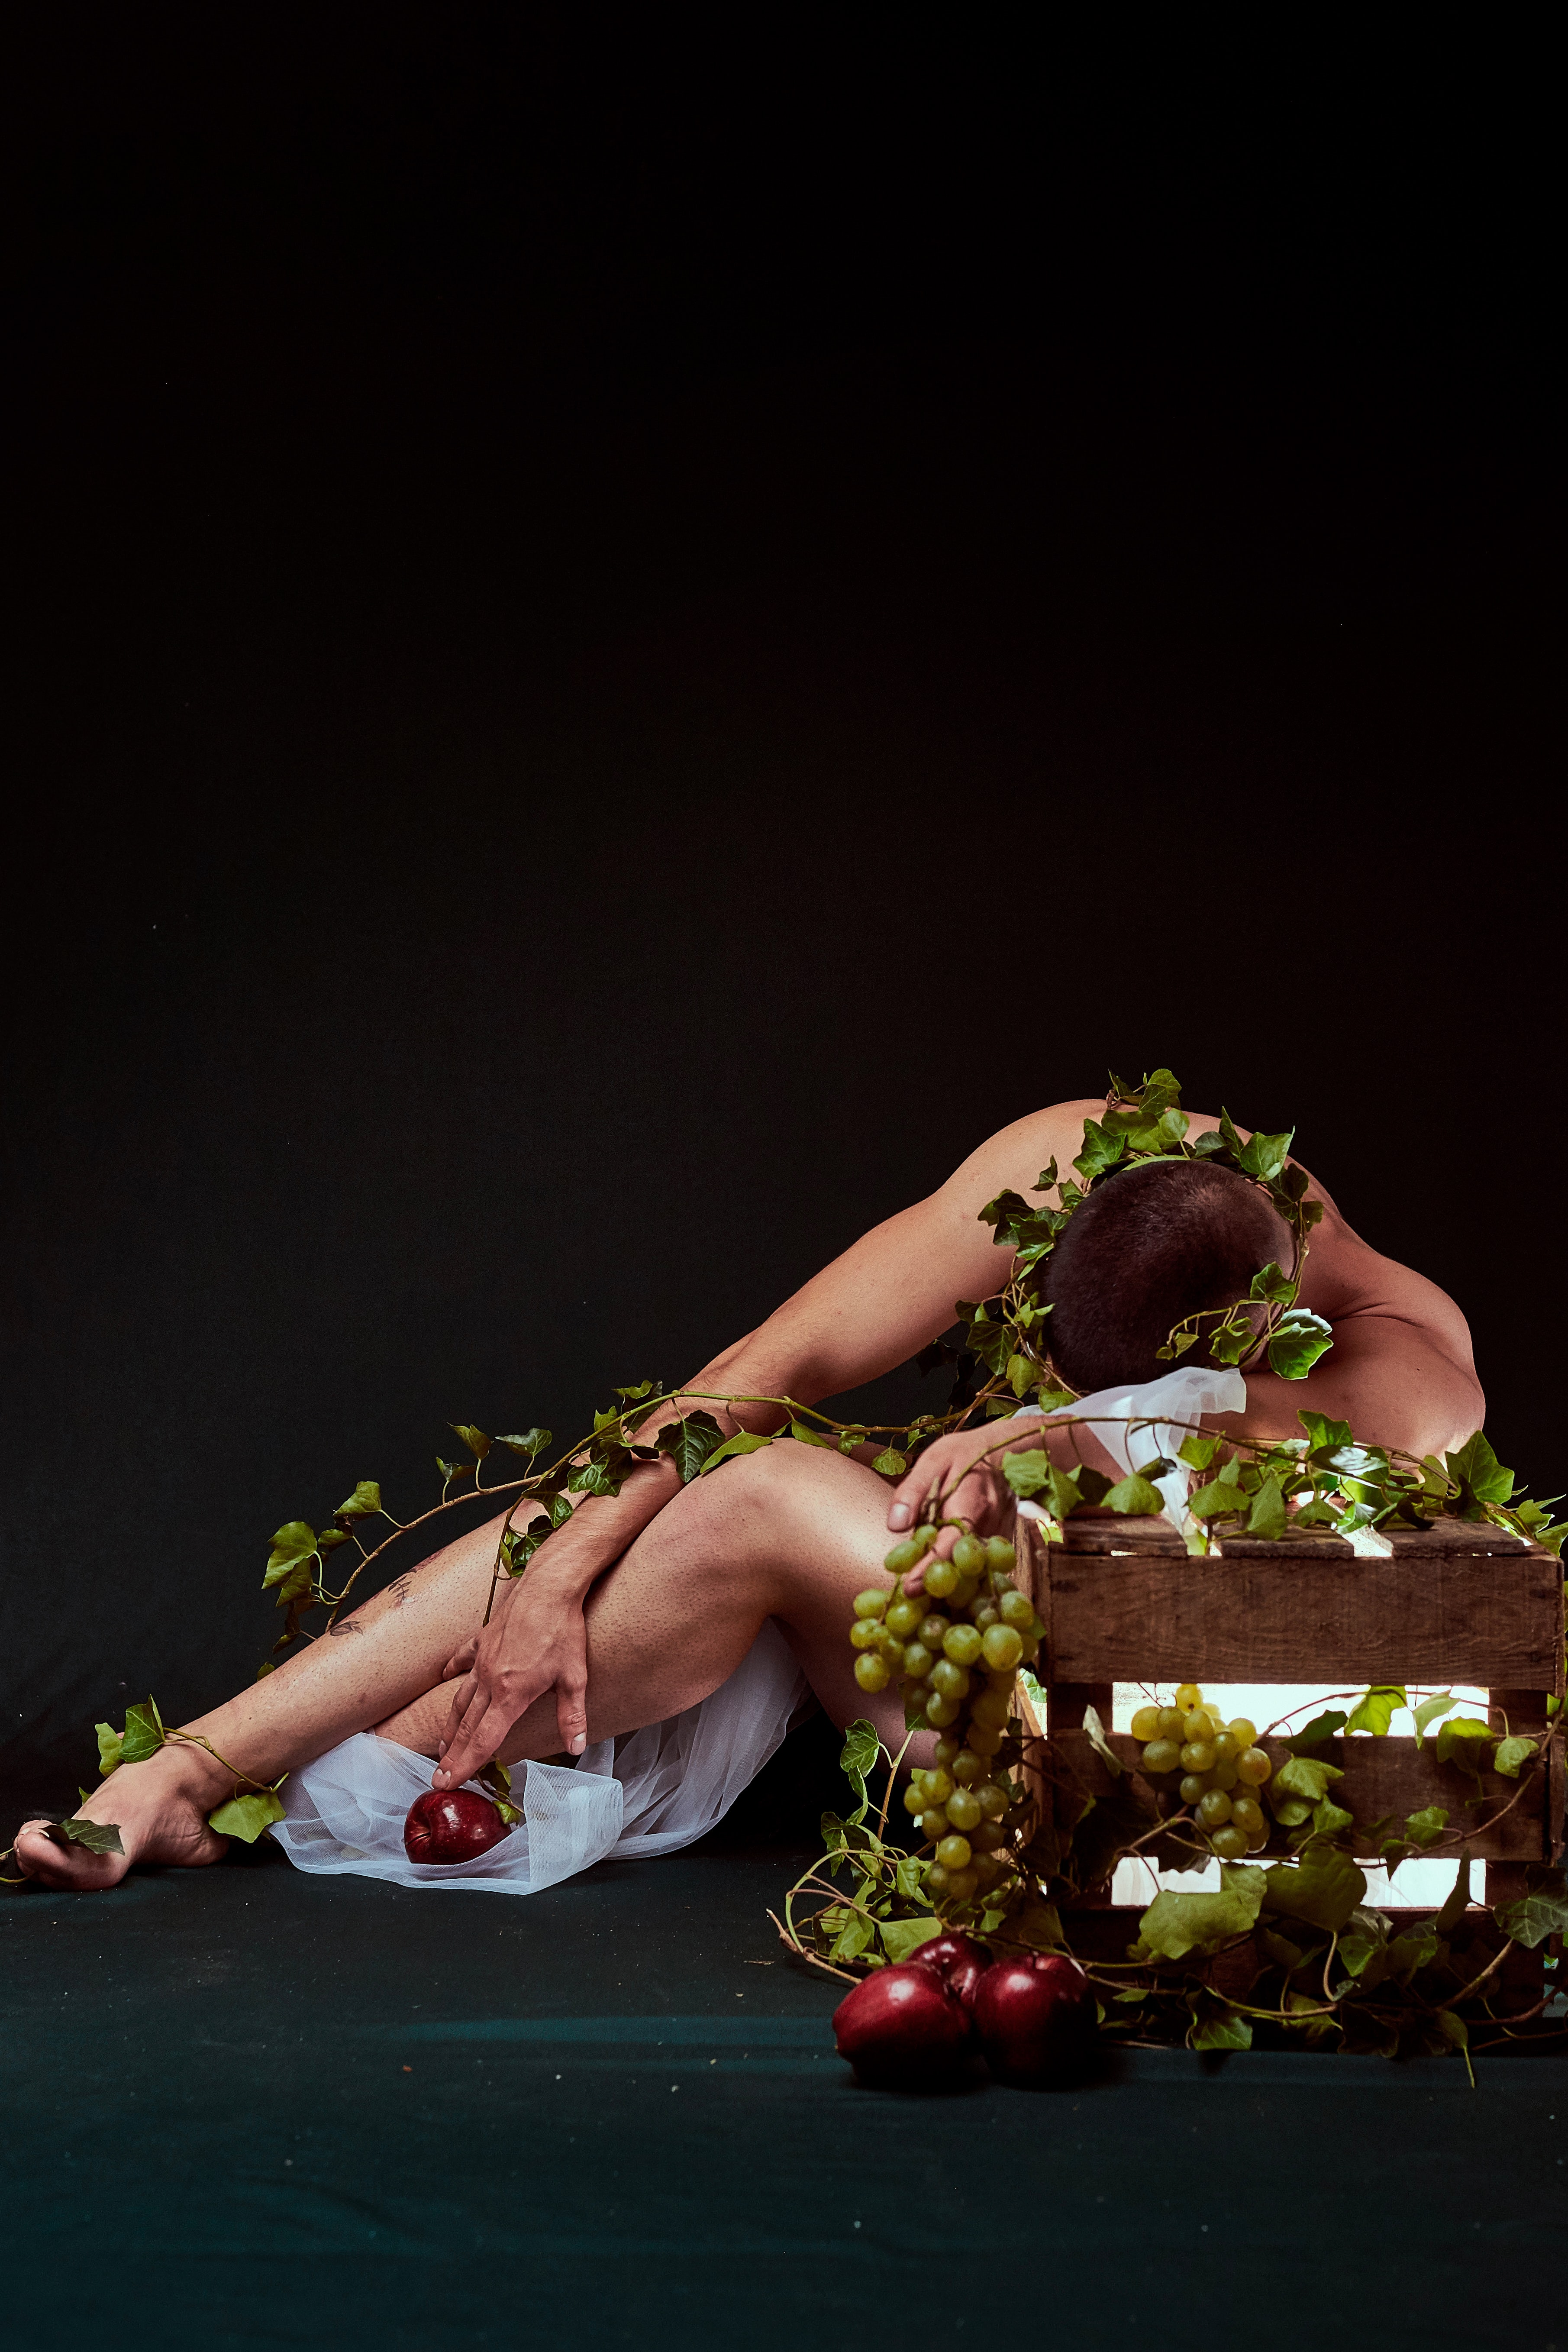 person laying down against brown box with grapes covering him